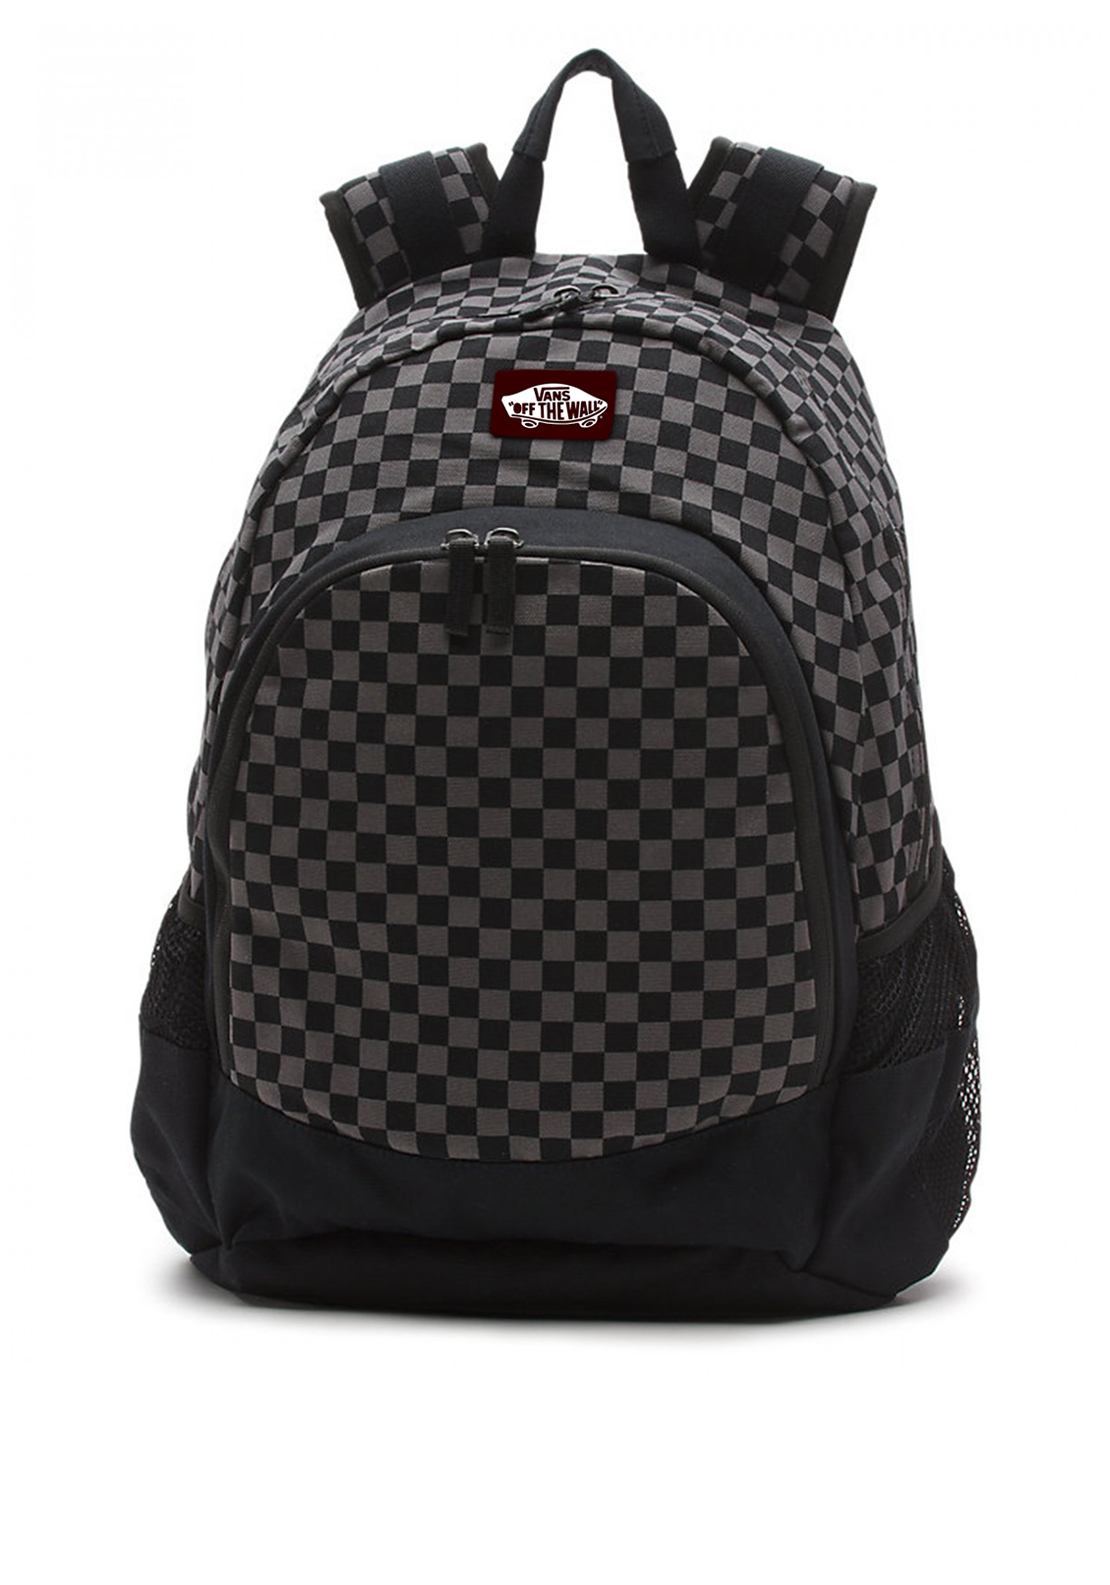 Vans Doren Chequered Backpack Schoolbag, Black and Grey